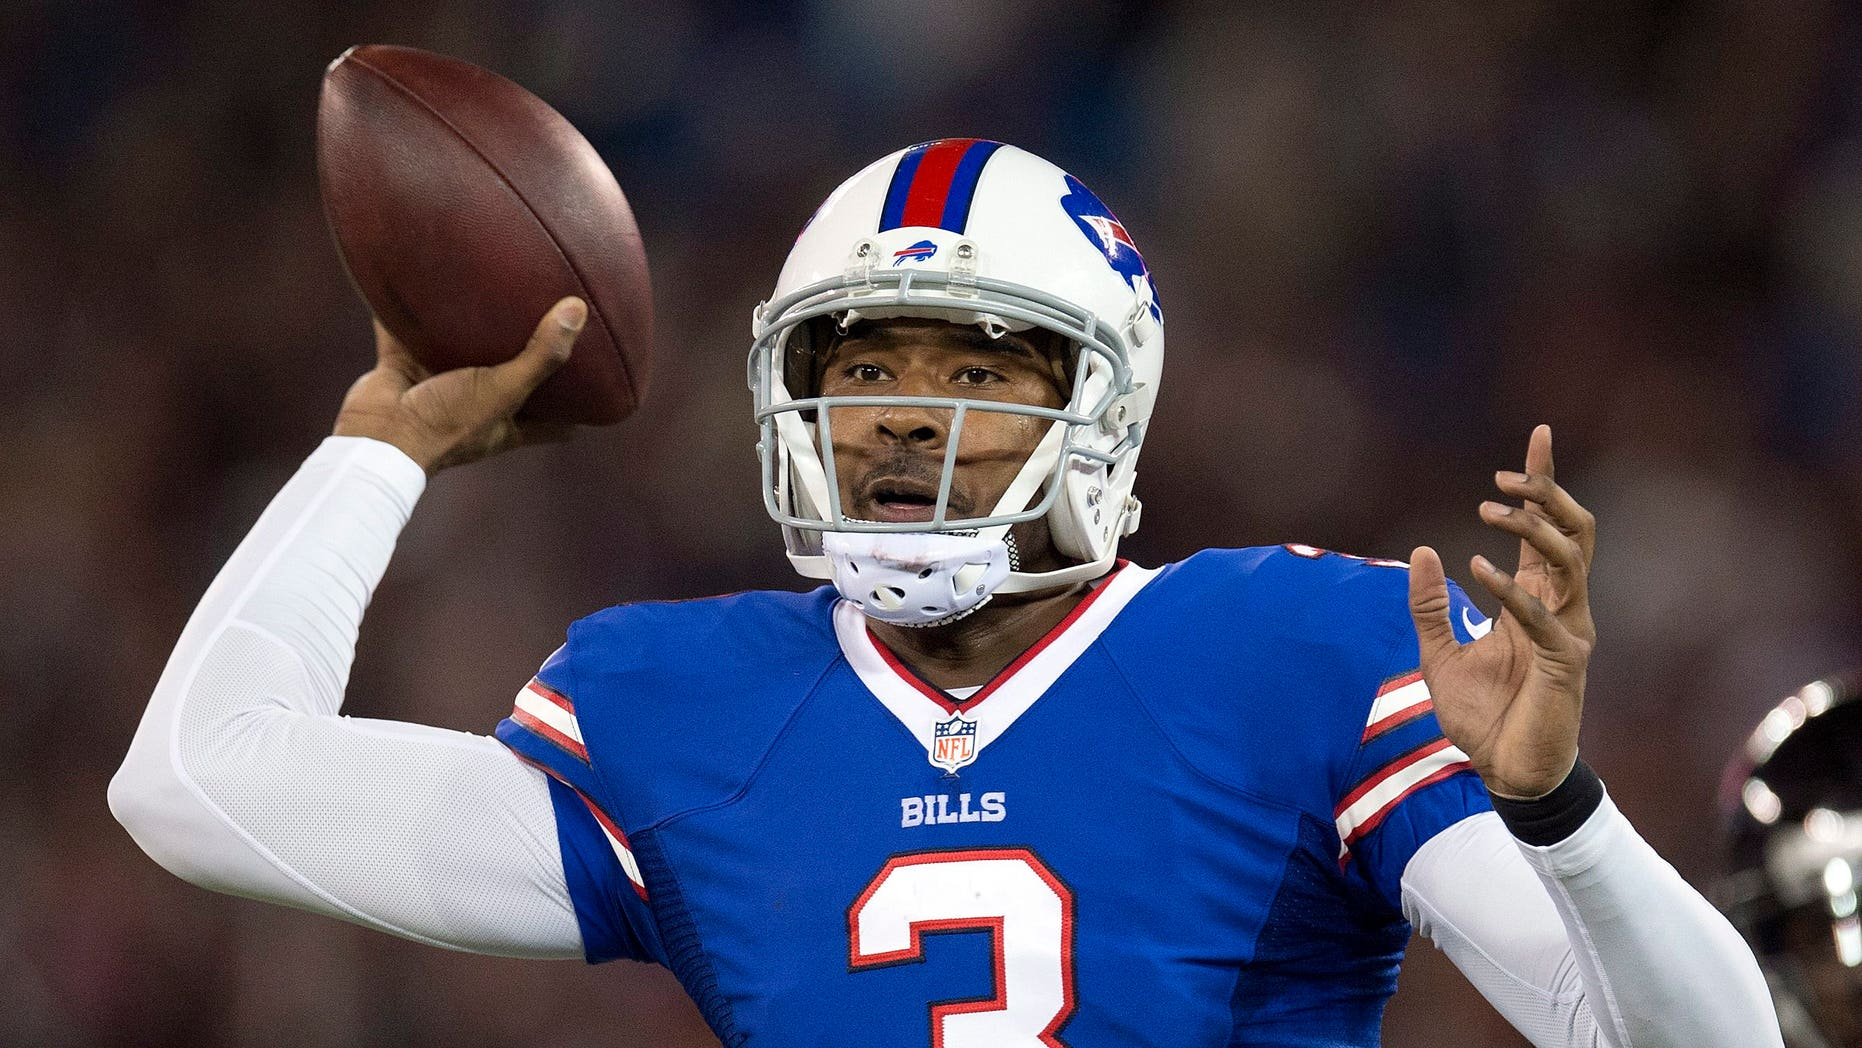 Buffalo Bills quarterback EJ Manuel launches a pass against the Atlanta Falcons during first half NFL football action in Toronto on Sunday Dec. 1, 2013. (AP Photo/The Canadian Press, Frank Gunn)